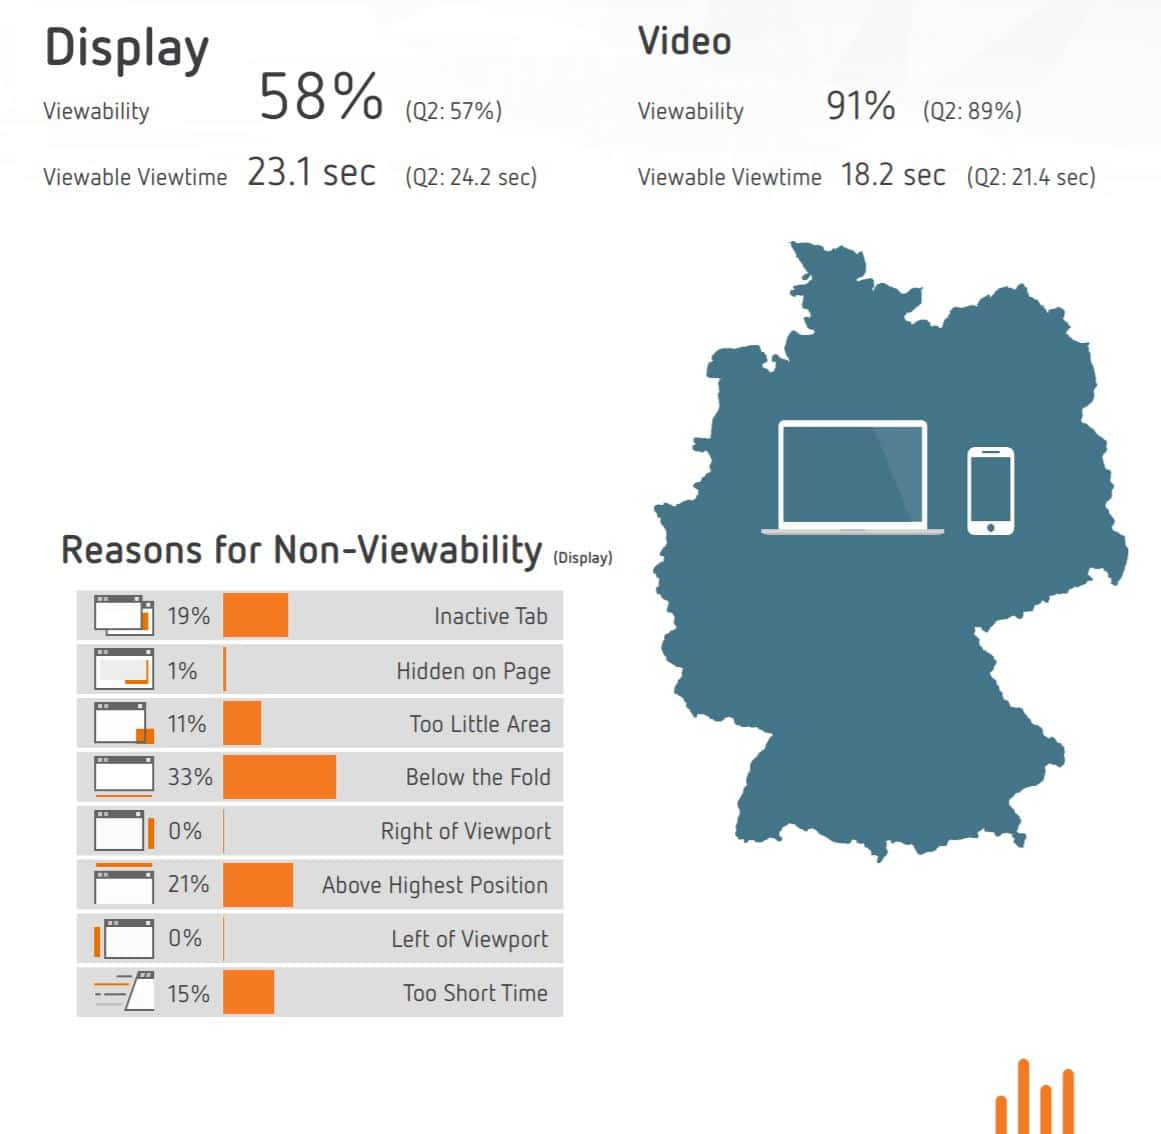 Reasons for non-viewability in Germany